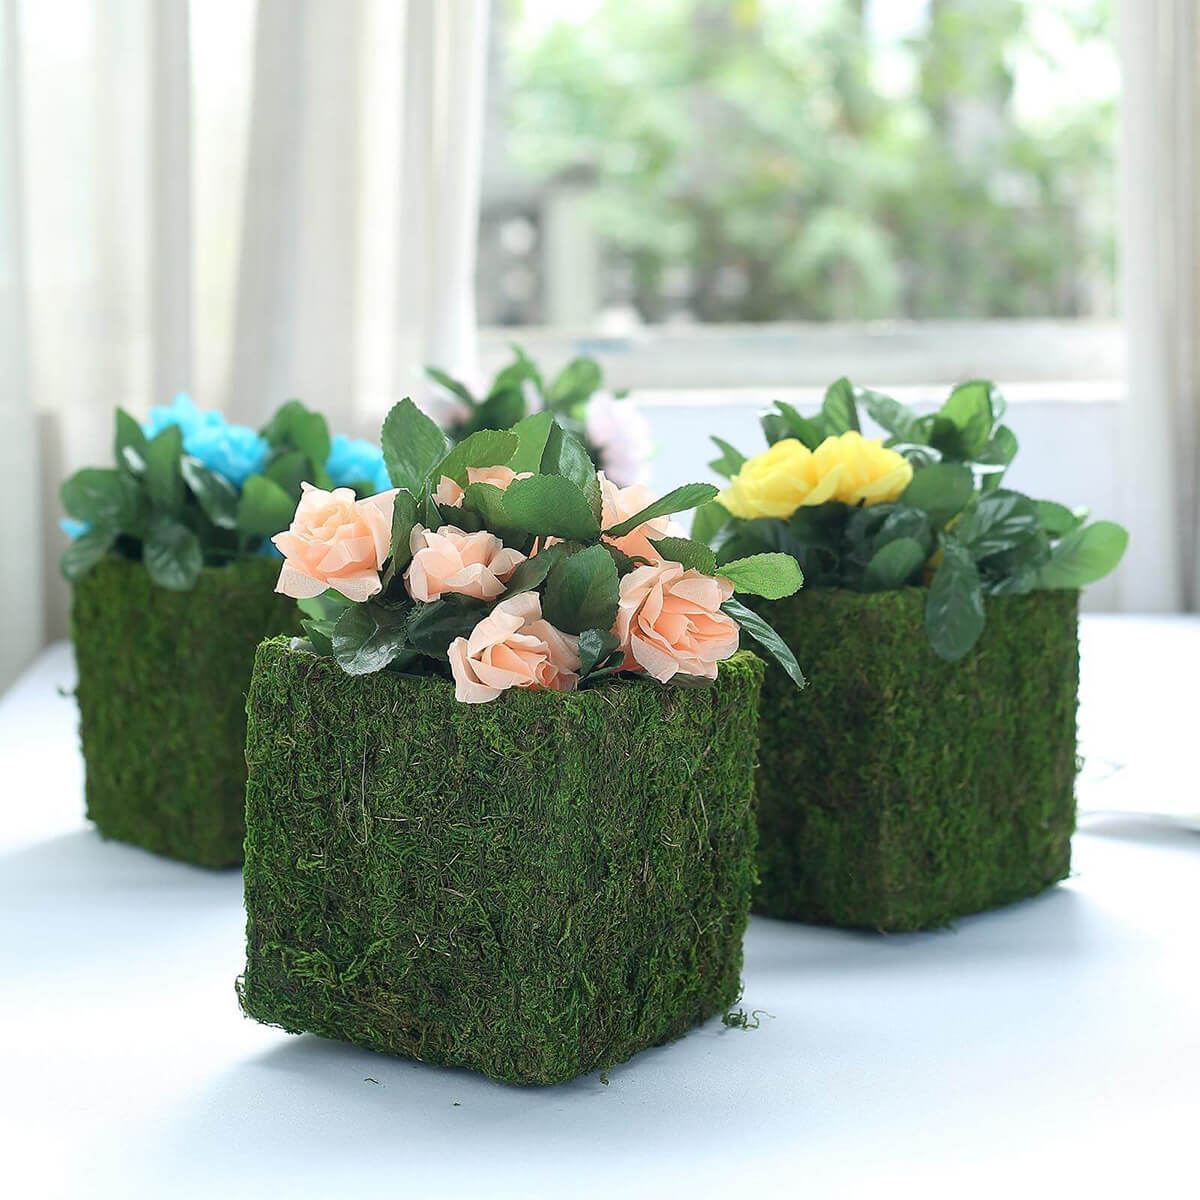 Natural Inspiration With Moss Covered Planters